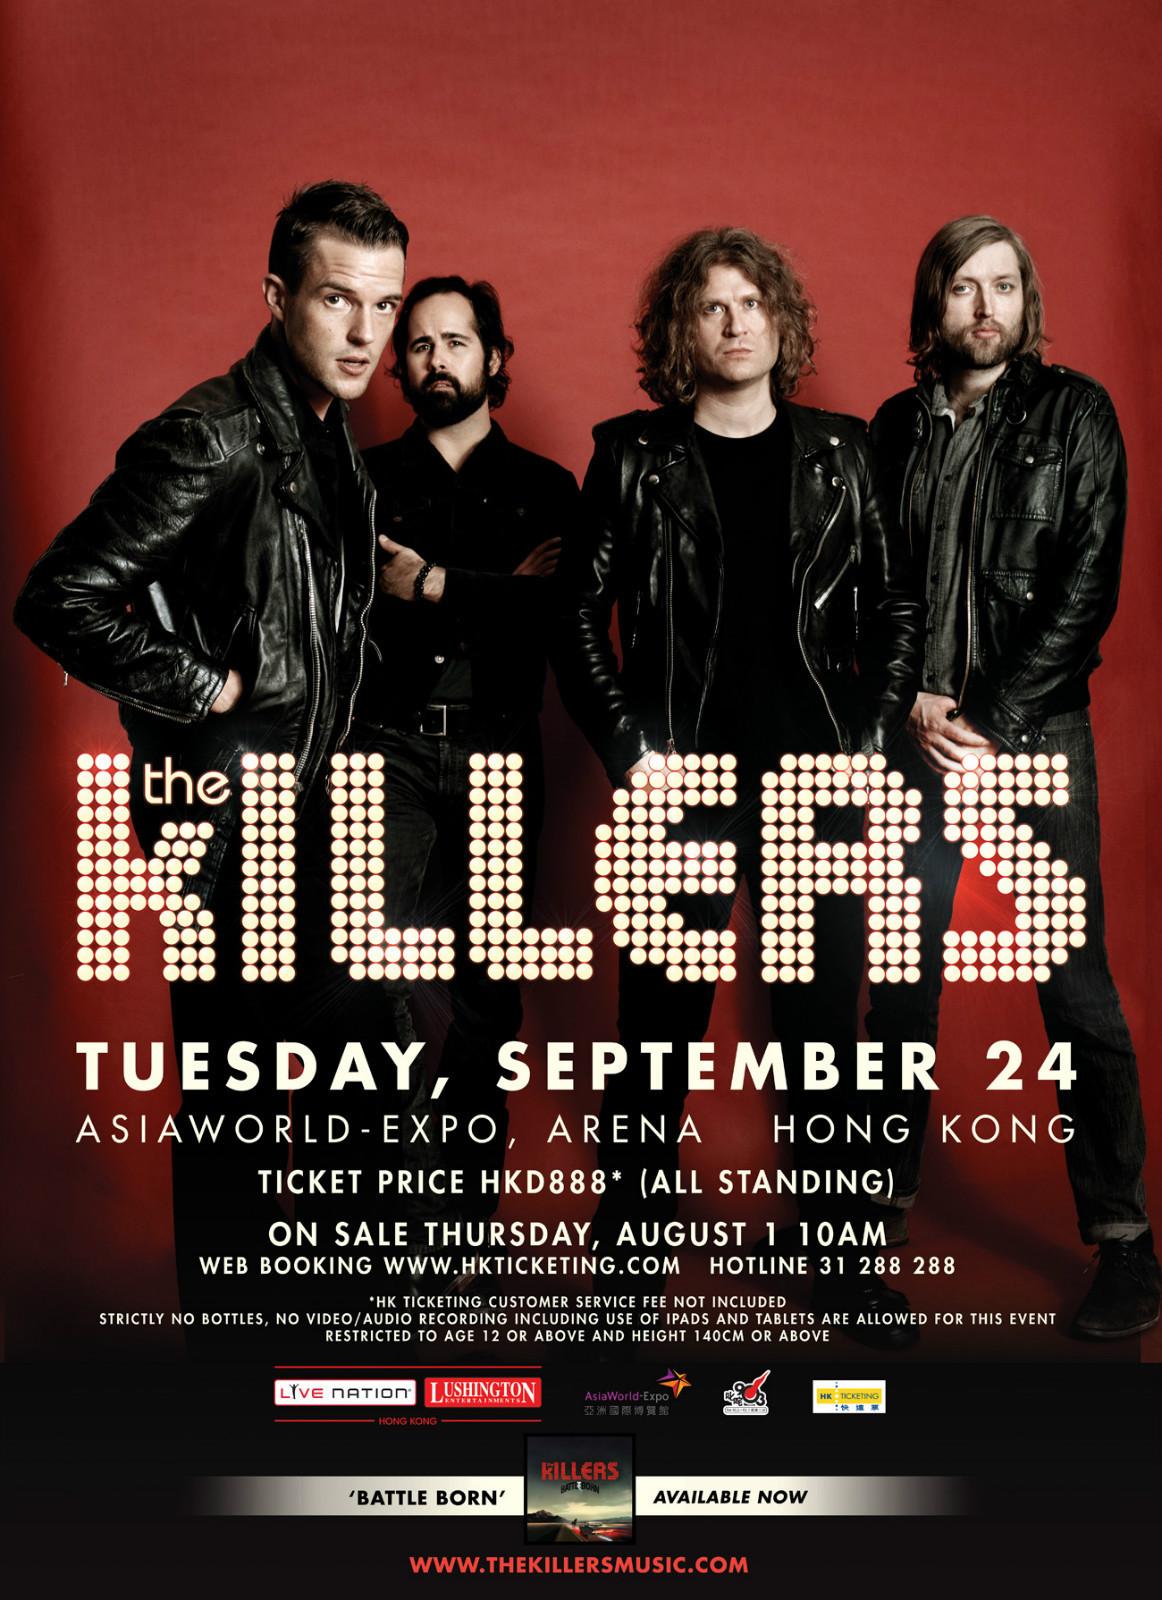 the_killers_live_in_hk_on_sale_1_aug_related_idea_box